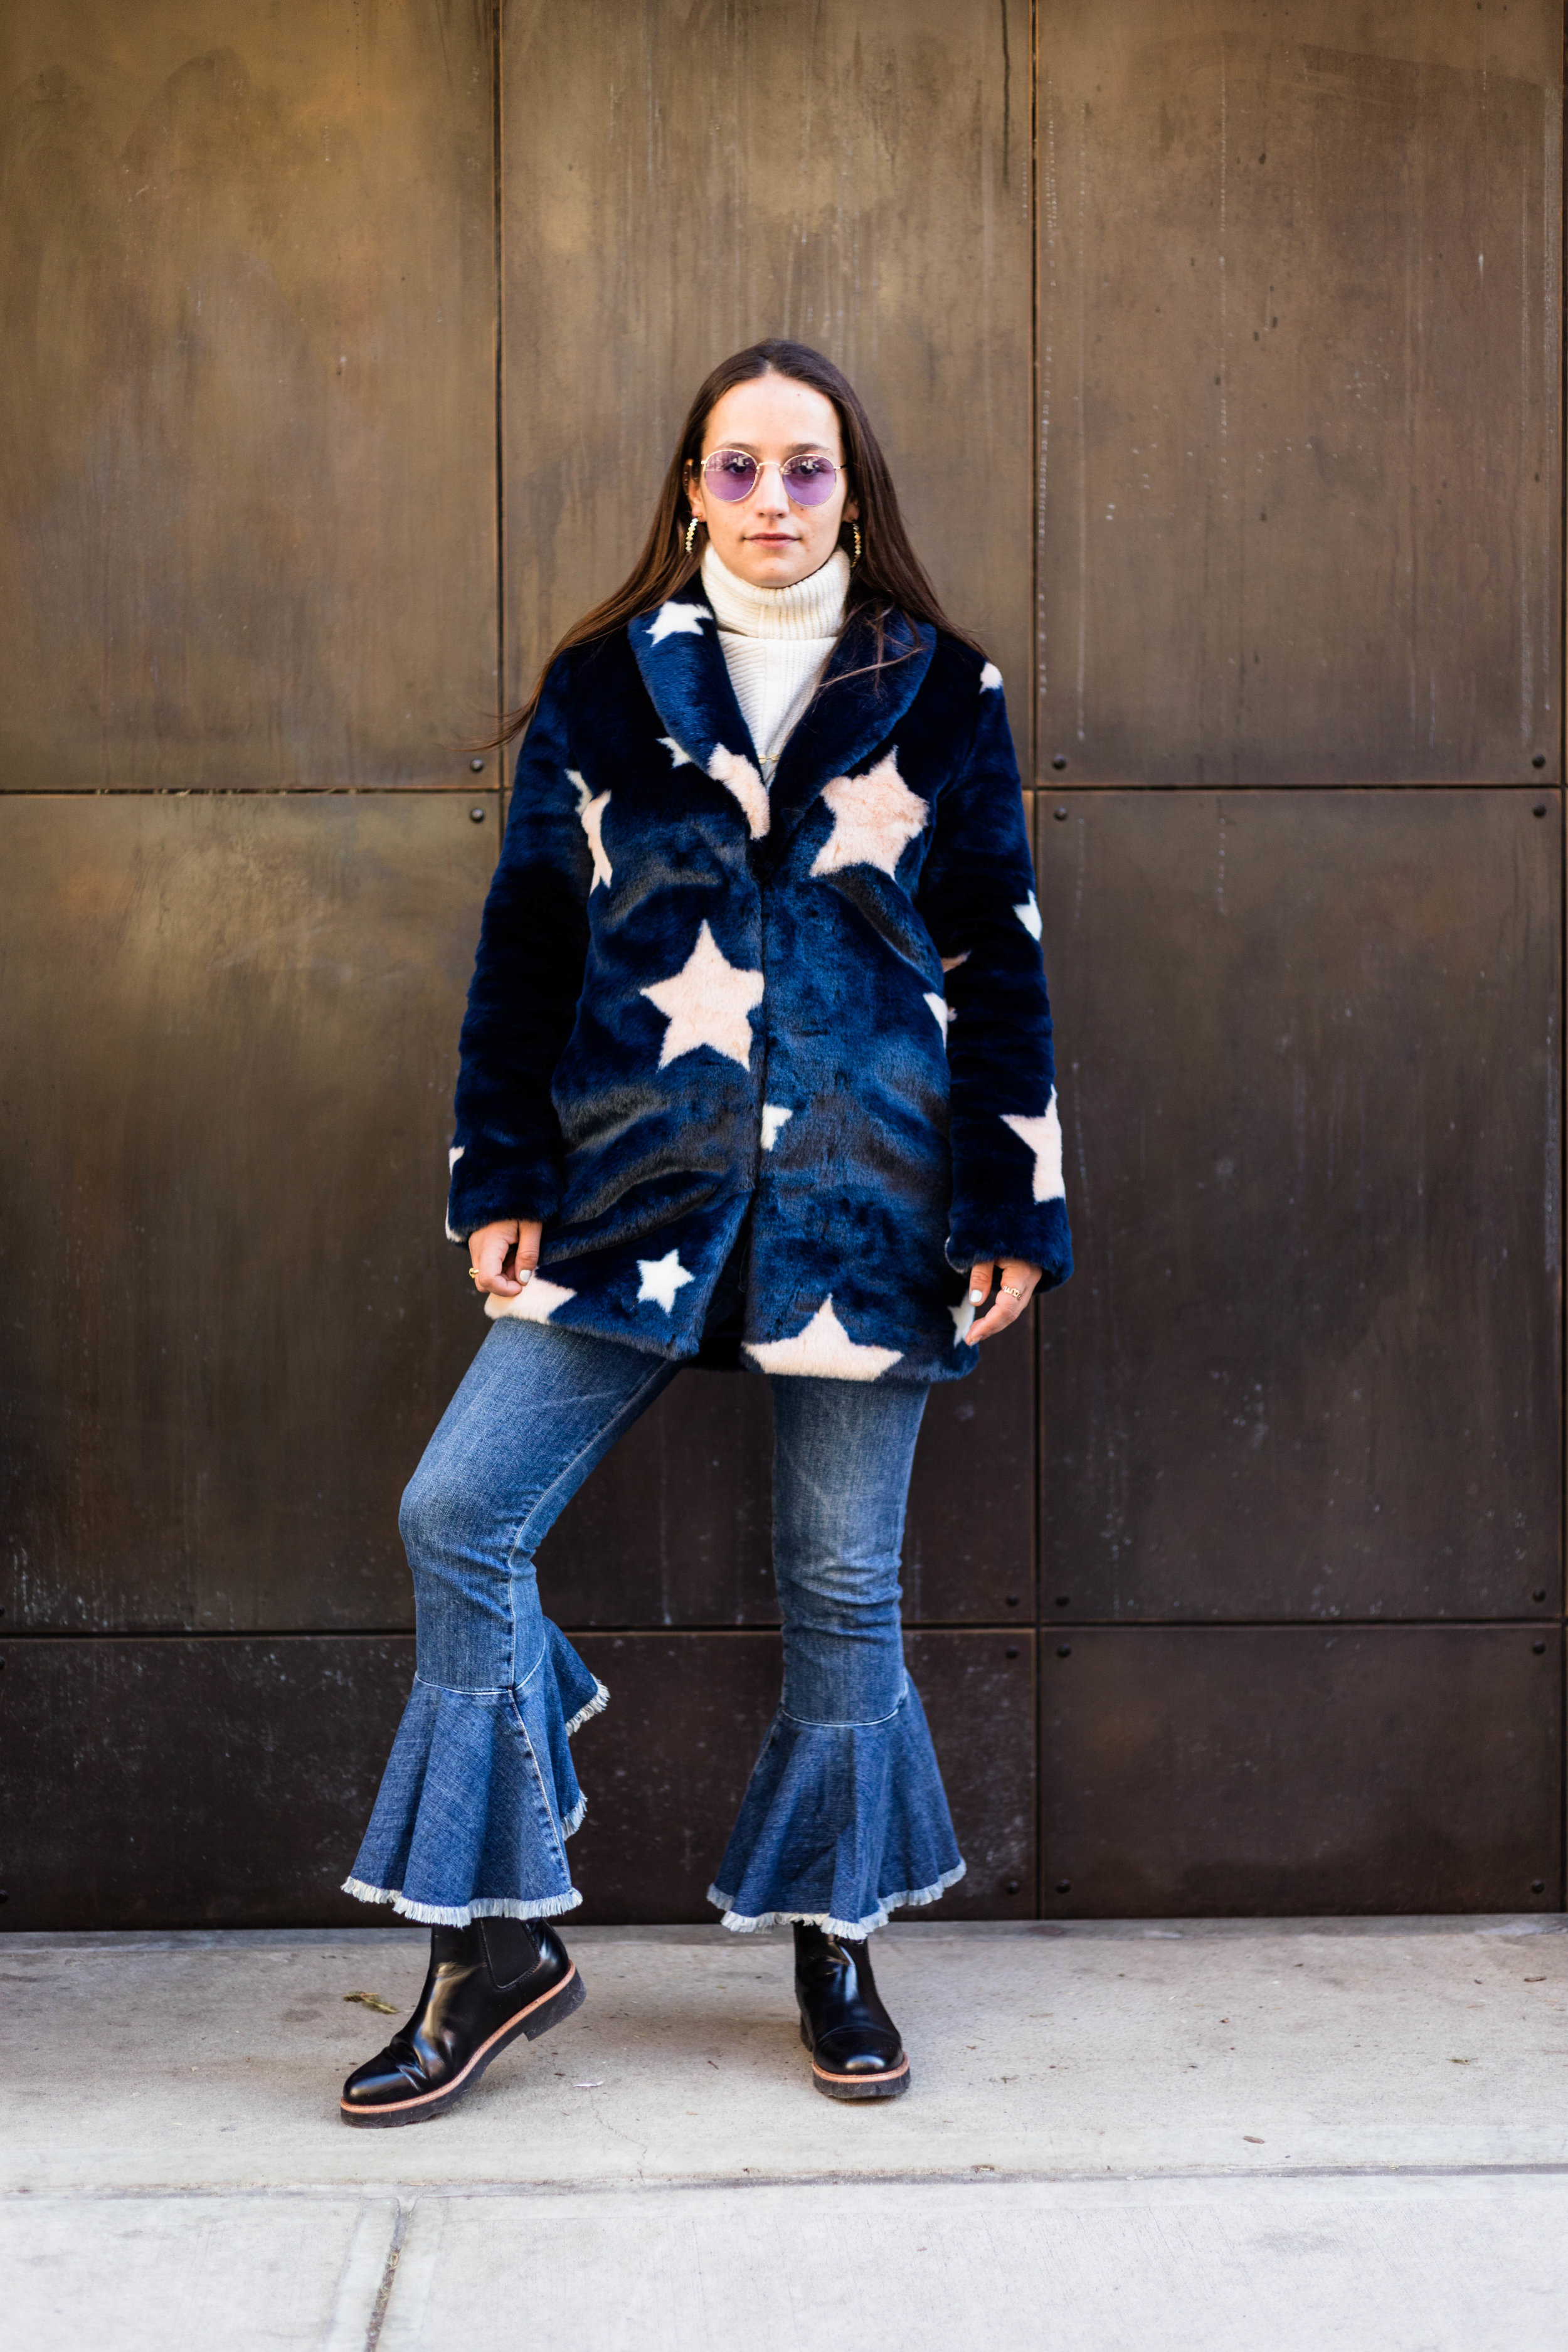 SOPHIE BICKLEY YIN 2MY YANG SISTER FASHION BLOGGERS NYC SEEING STARS POST